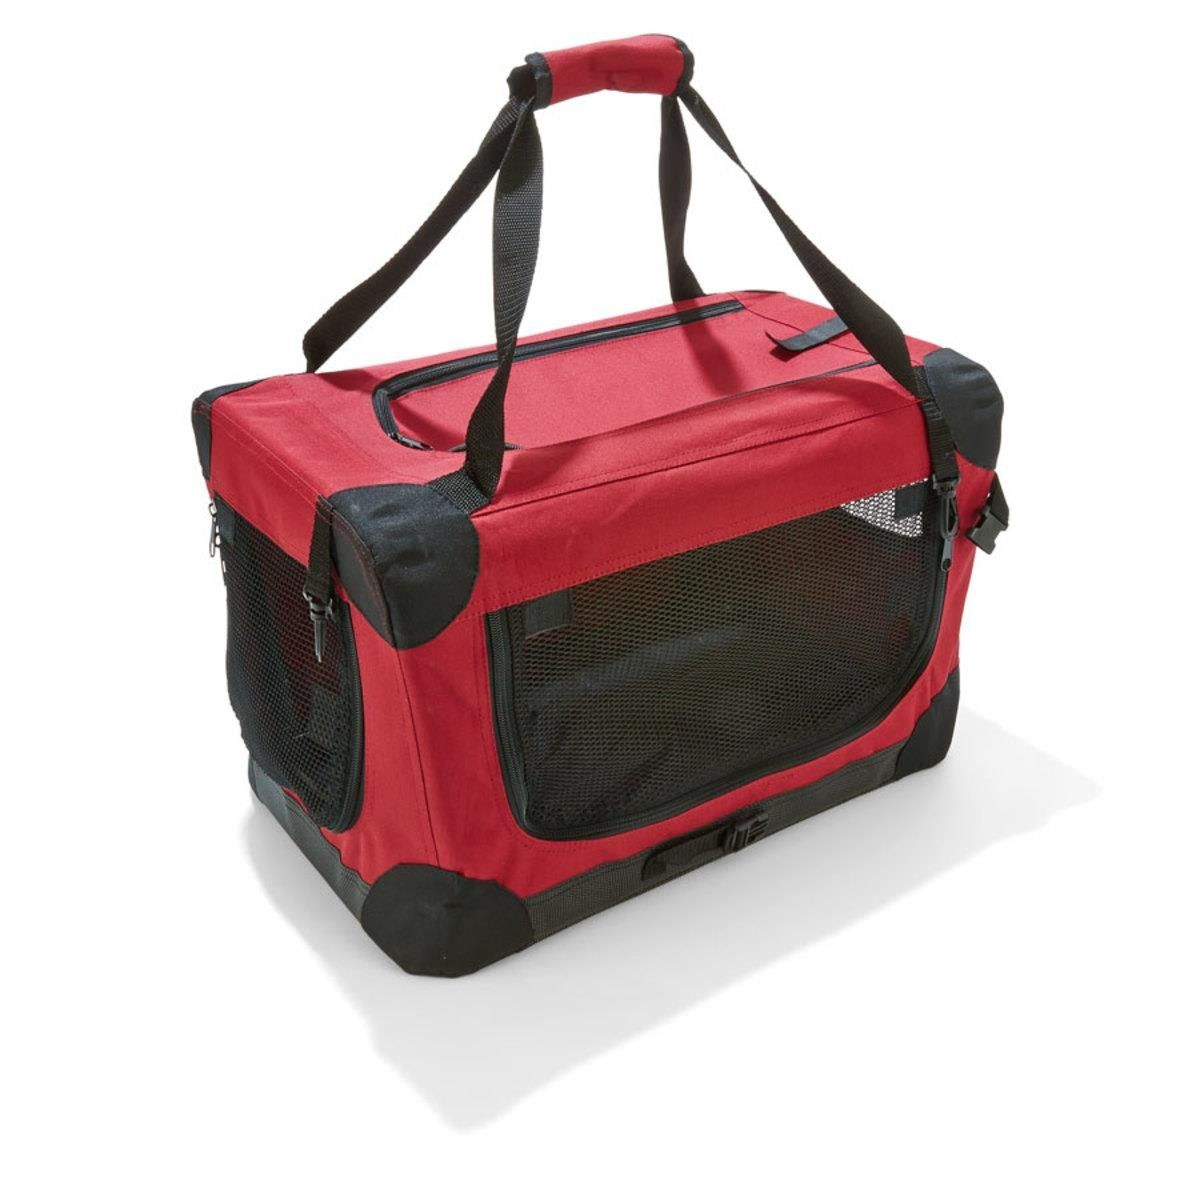 Foldable Pet Carrier Small Pet Carriers Cat Accessories Pets